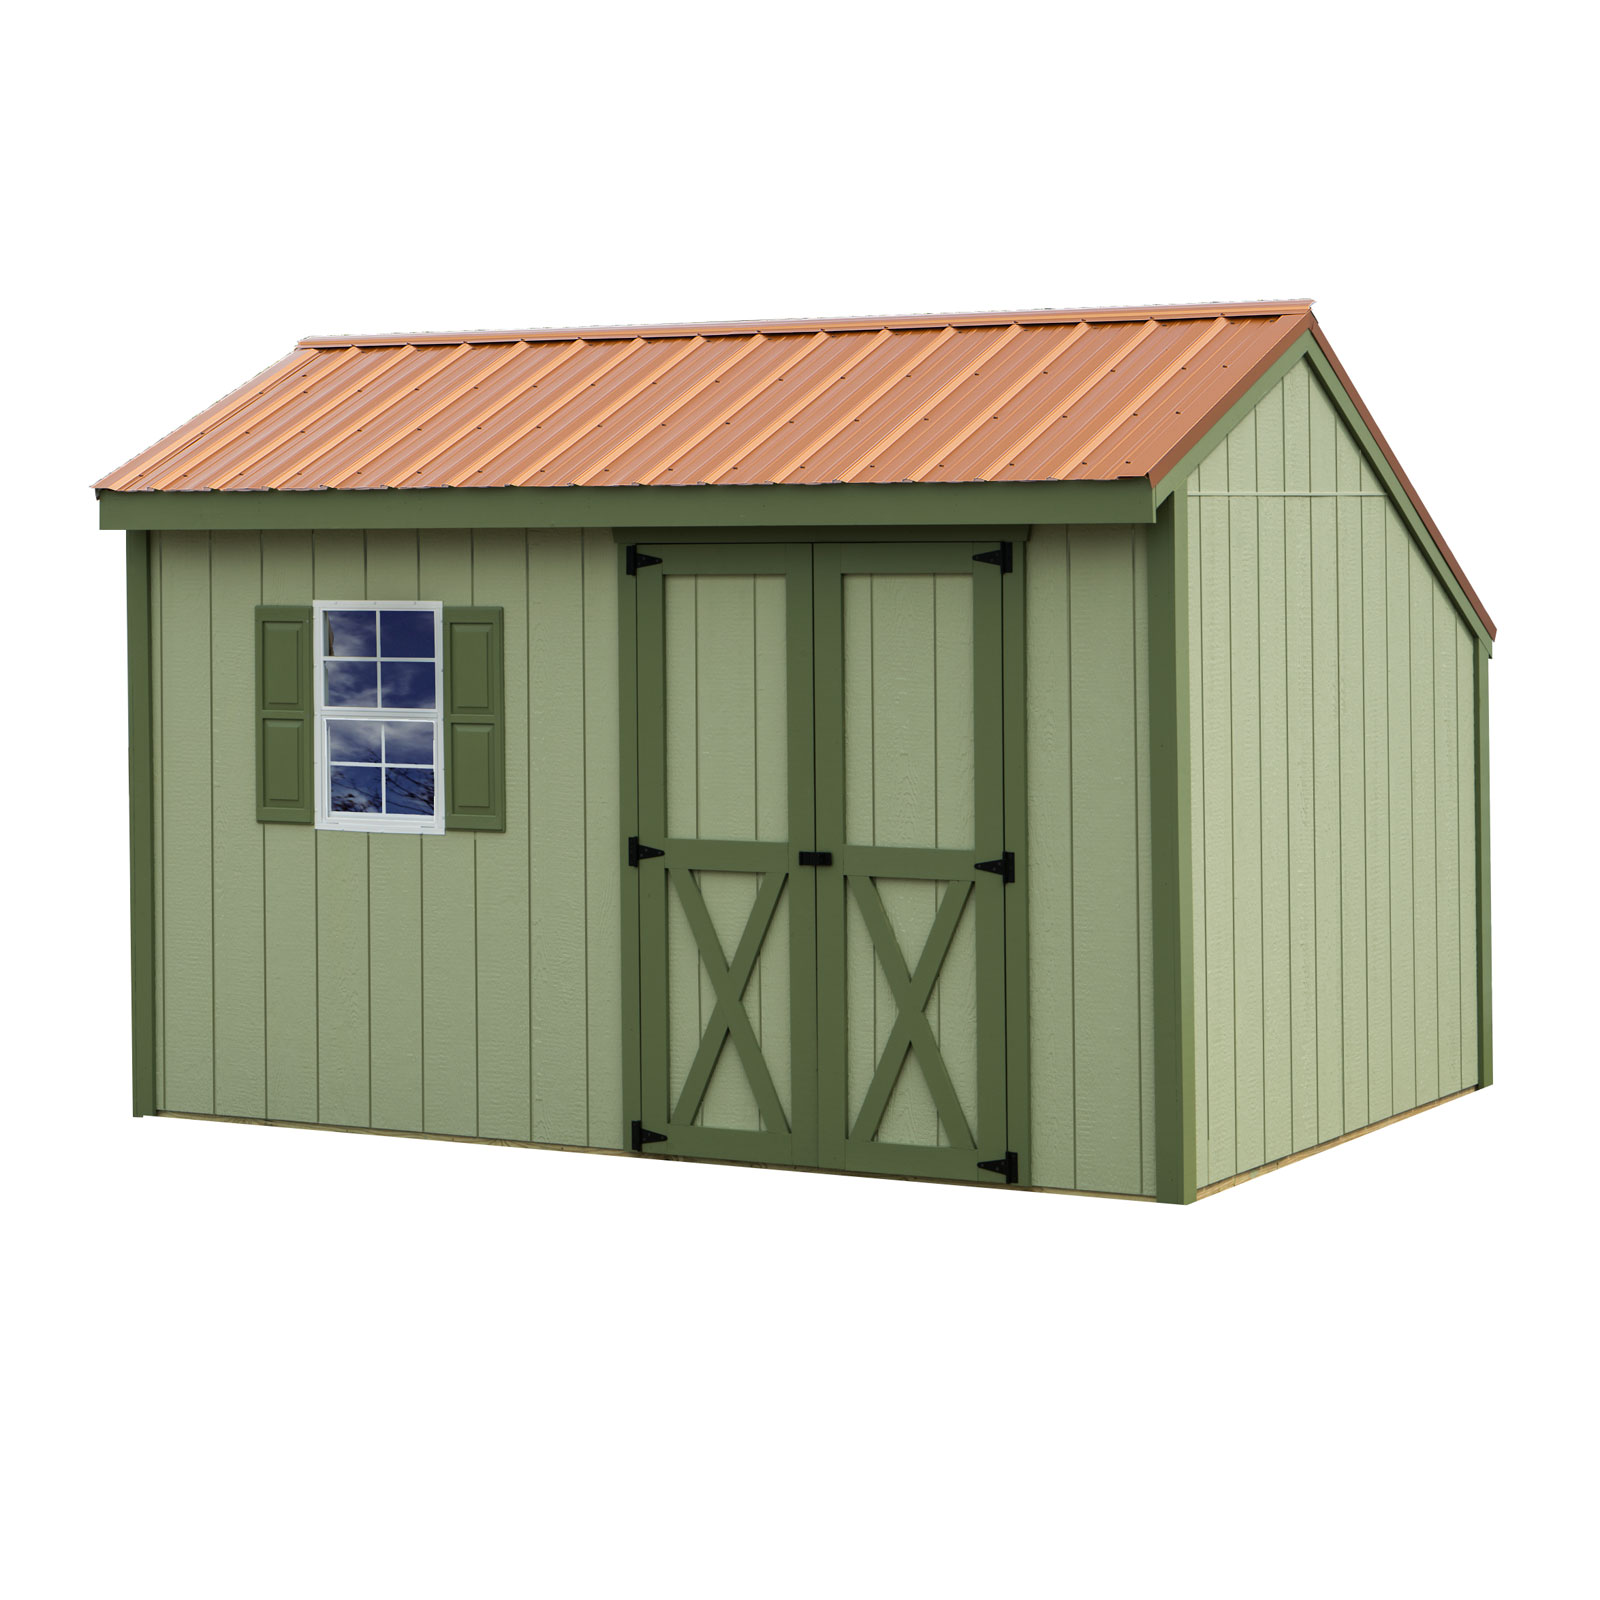 metal shed kits best barns aspen 8ftx10ft wooden shed barn kit 29097